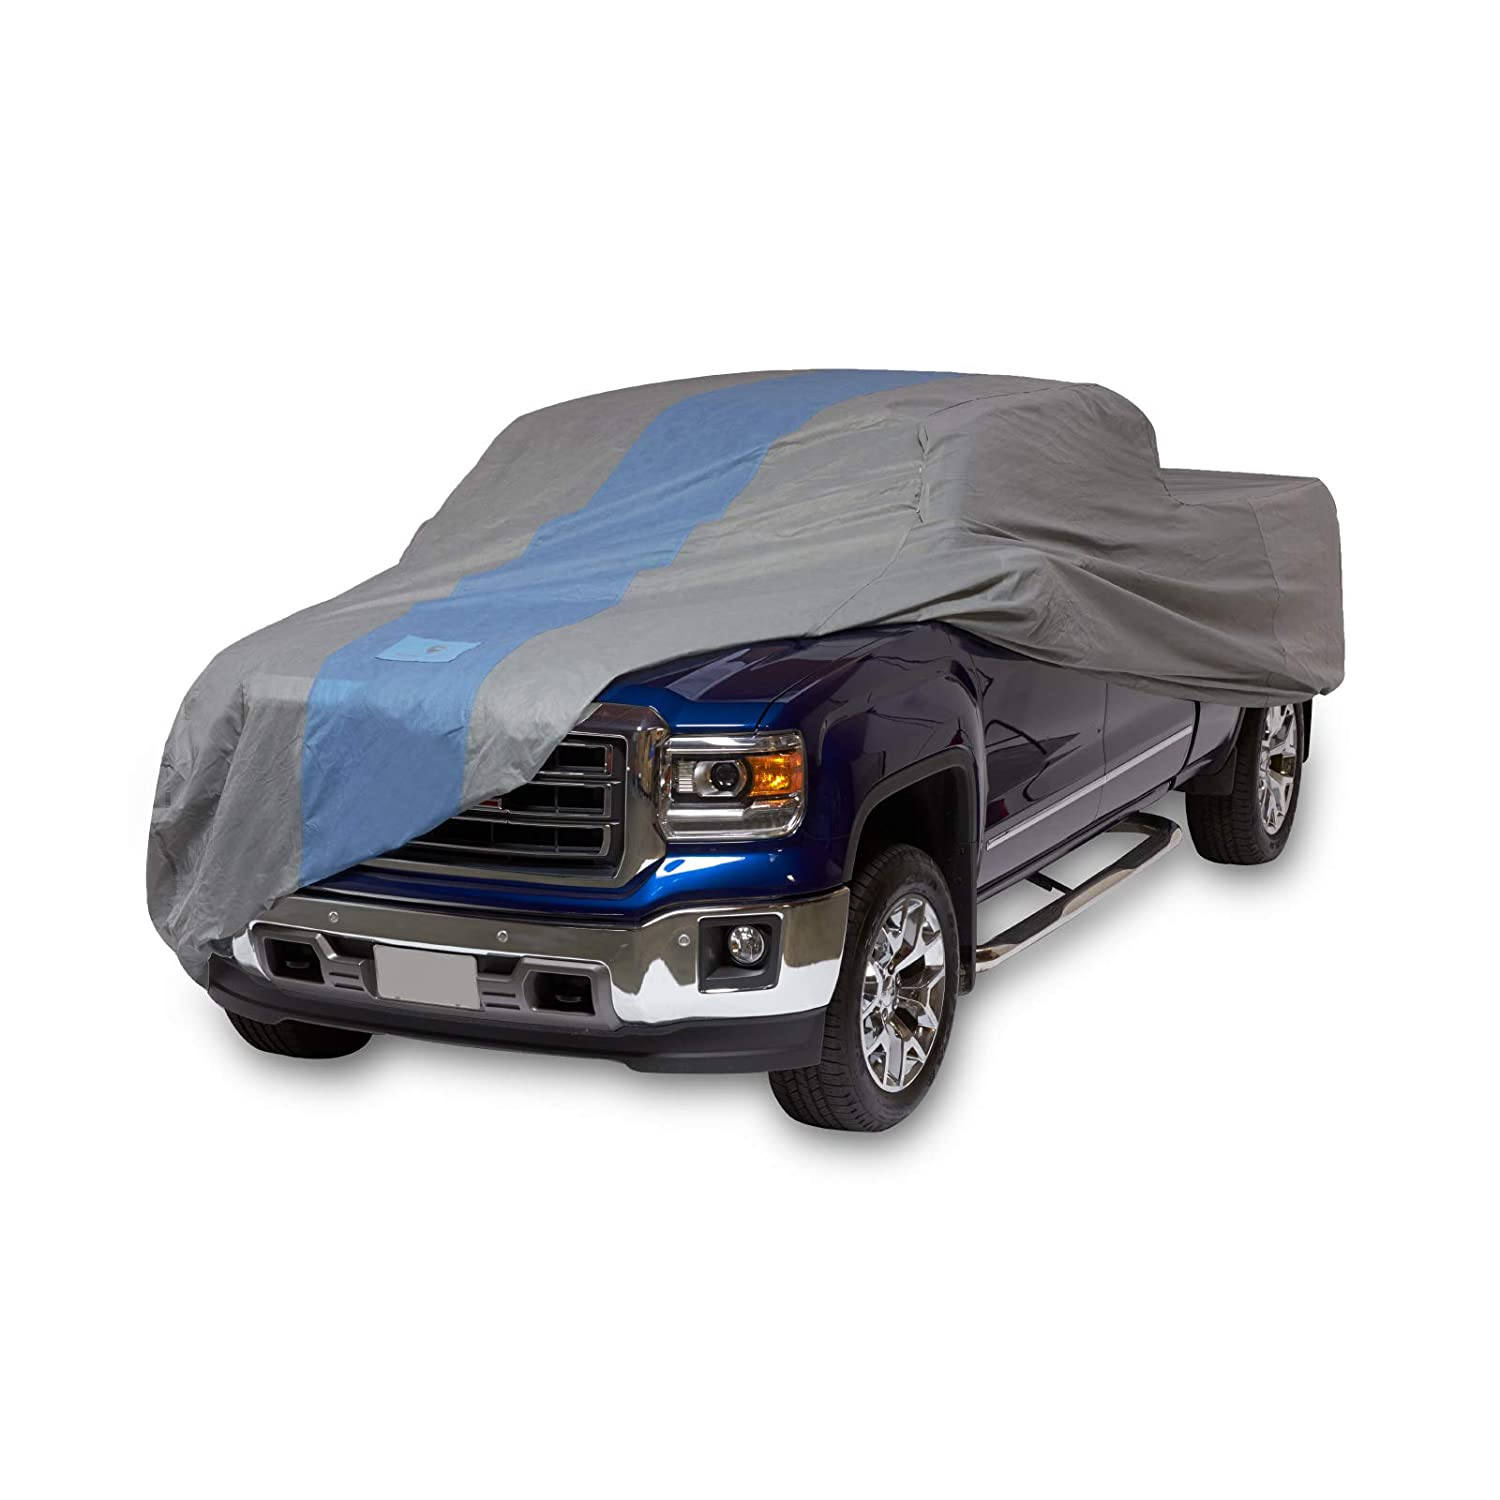 Duck Covers Defender Indoor Pickup Truck Cover, Limited 2 Year Warranty, Fits Crew Cab Dually Long Bed Trucks up to 22 ft. A1T264